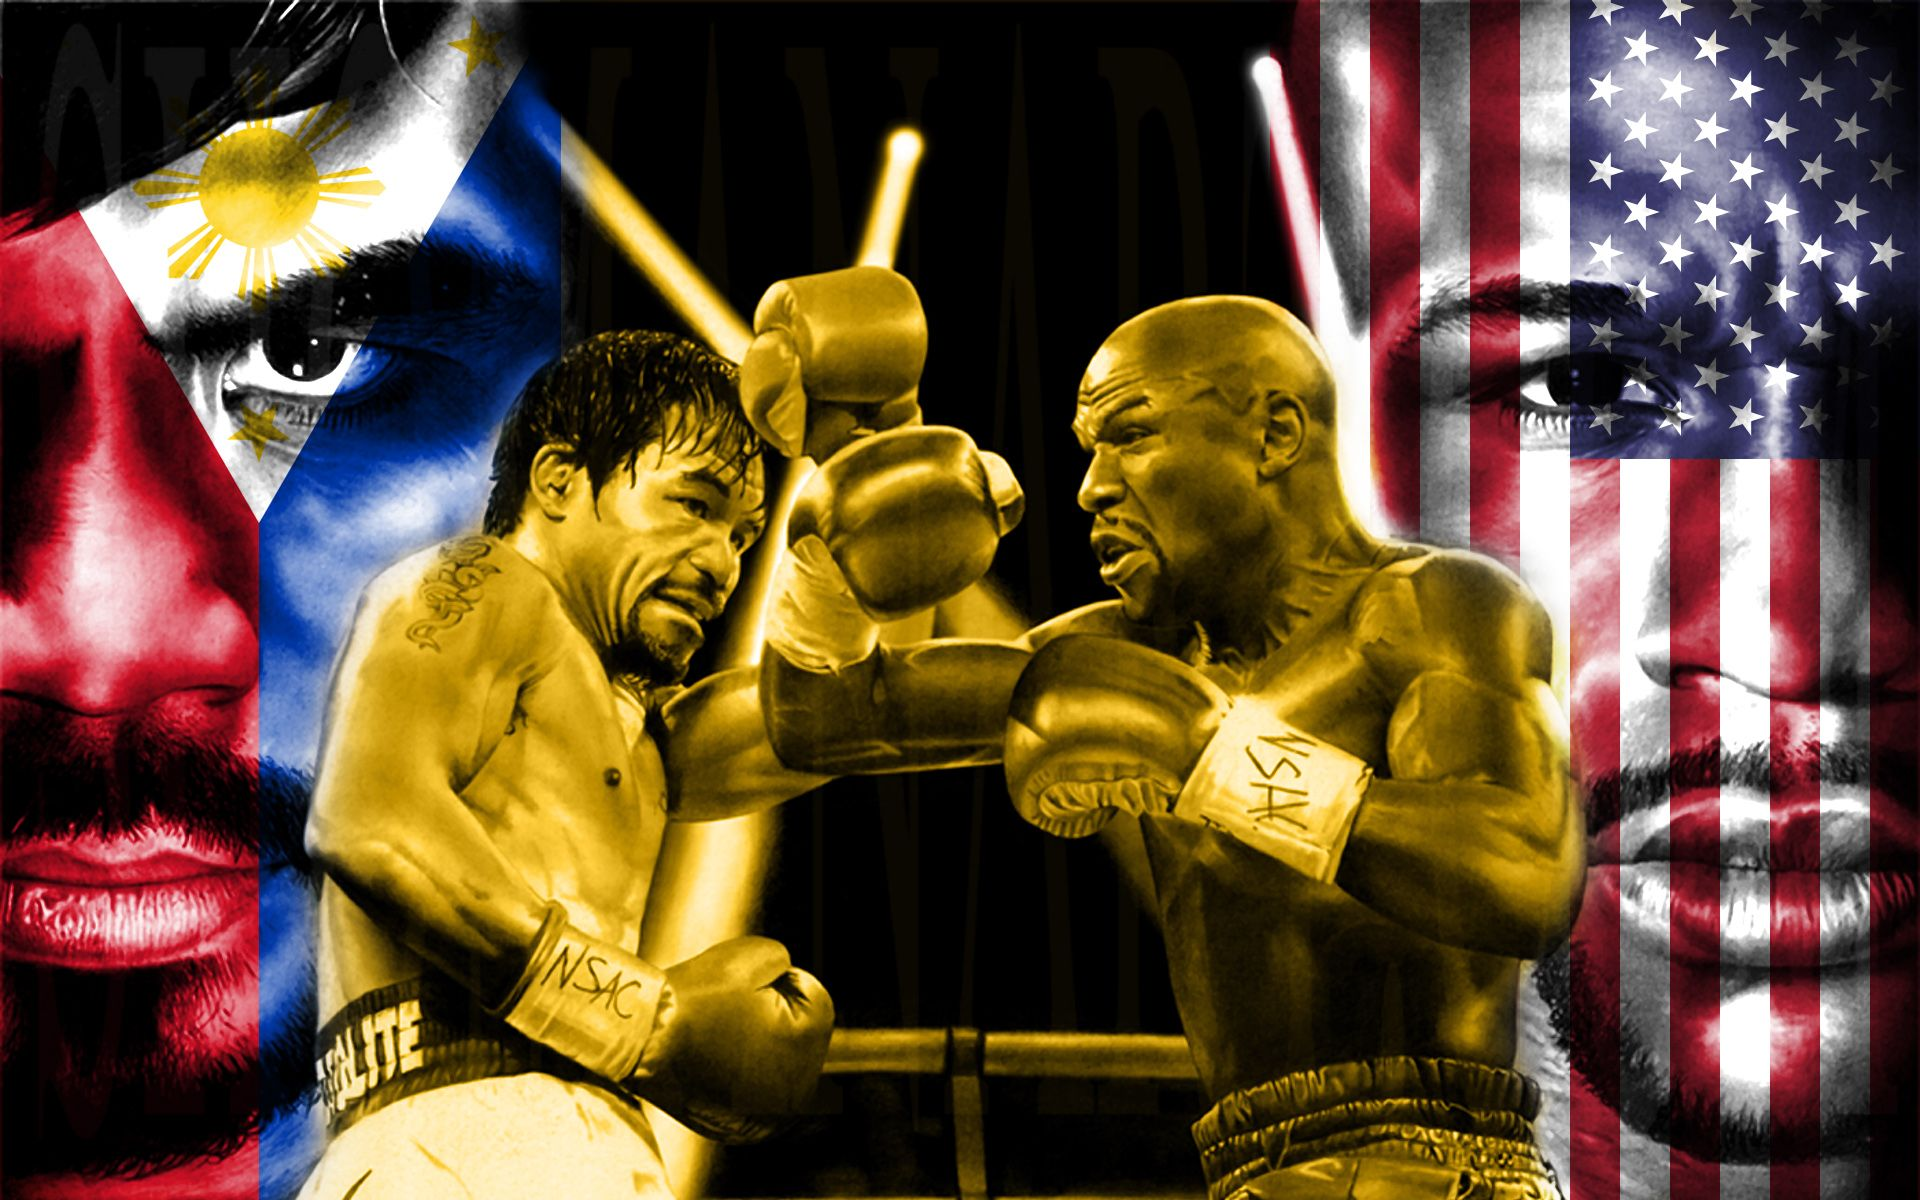 Boxer Floyd Mayweather Jr And His Prizes Wallpapers And Images 774 1000 Floyd Mayweather Wallpaper 26 Wallpapers Floyd Mayweather Manny Pacquiao Pacquiao Vs